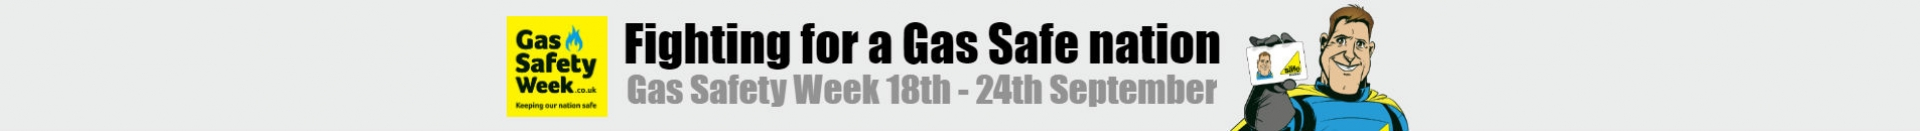 Gas Safety Week 2017